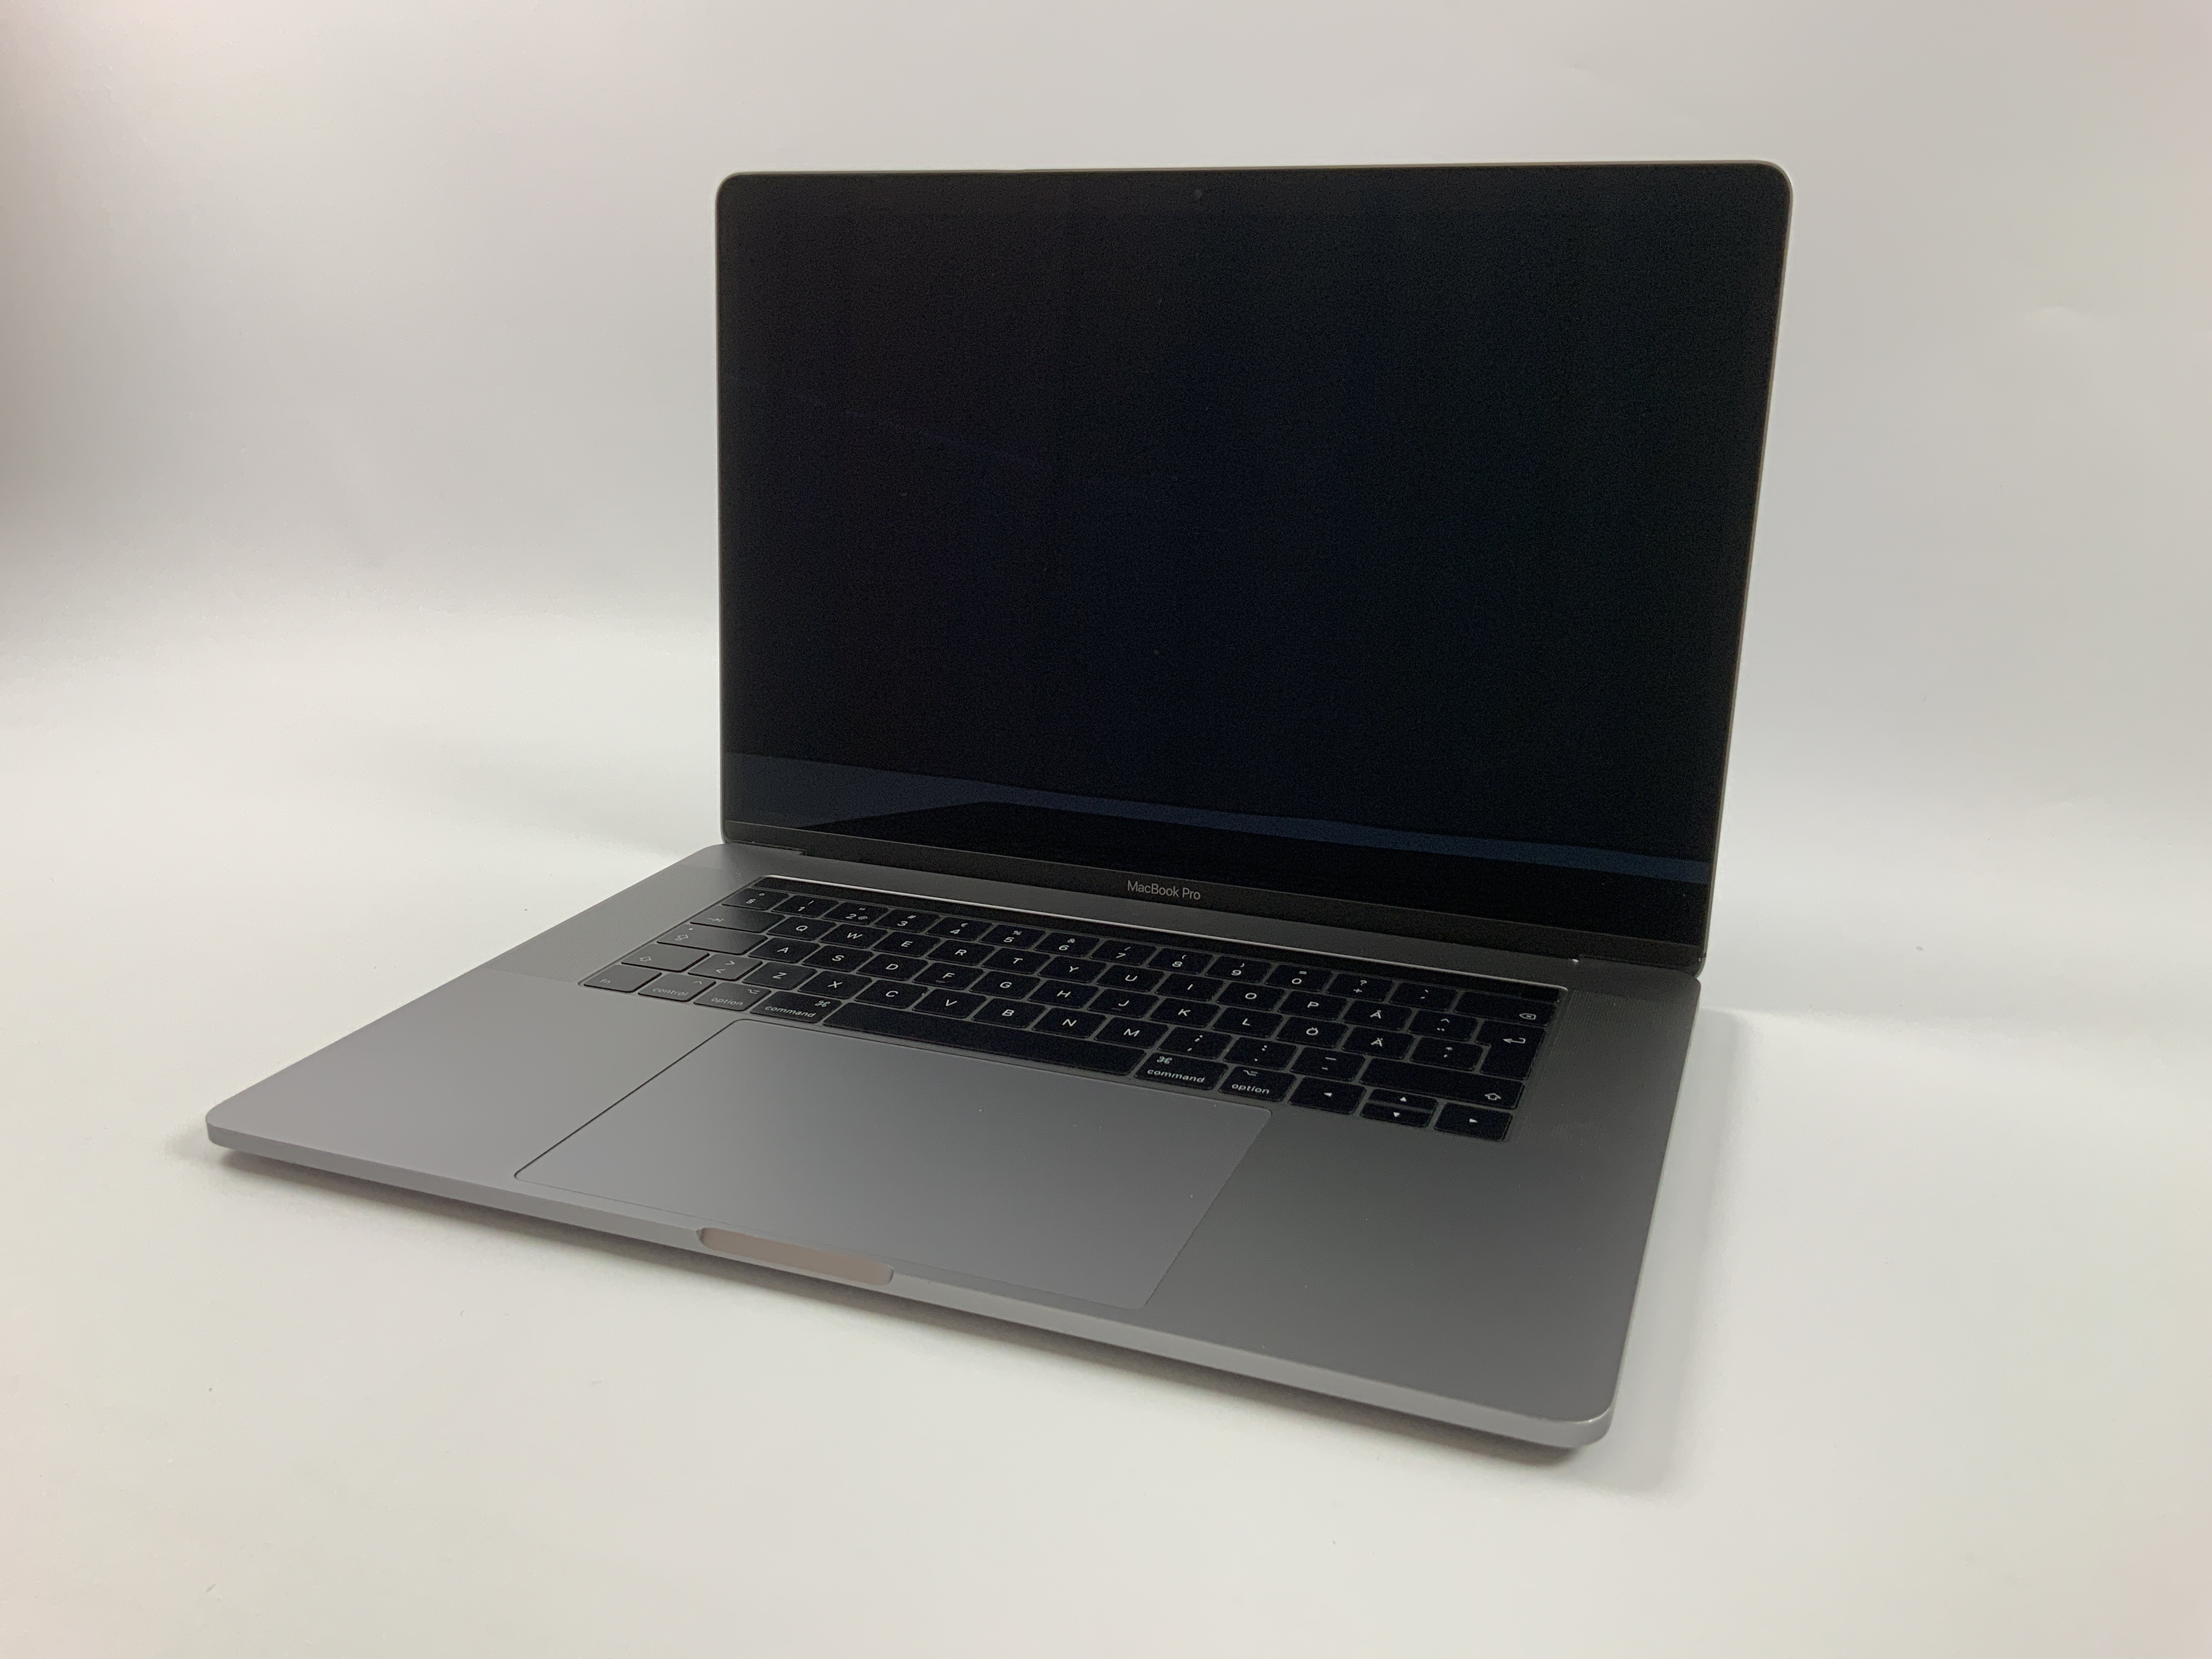 "MacBook Pro 15"" Touch Bar Mid 2017 (Intel Quad-Core i7 2.8 GHz 16 GB RAM 512 GB SSD), Space Gray, Intel Quad-Core i7 2.8 GHz, 16 GB RAM, 512 GB SSD, image 1"